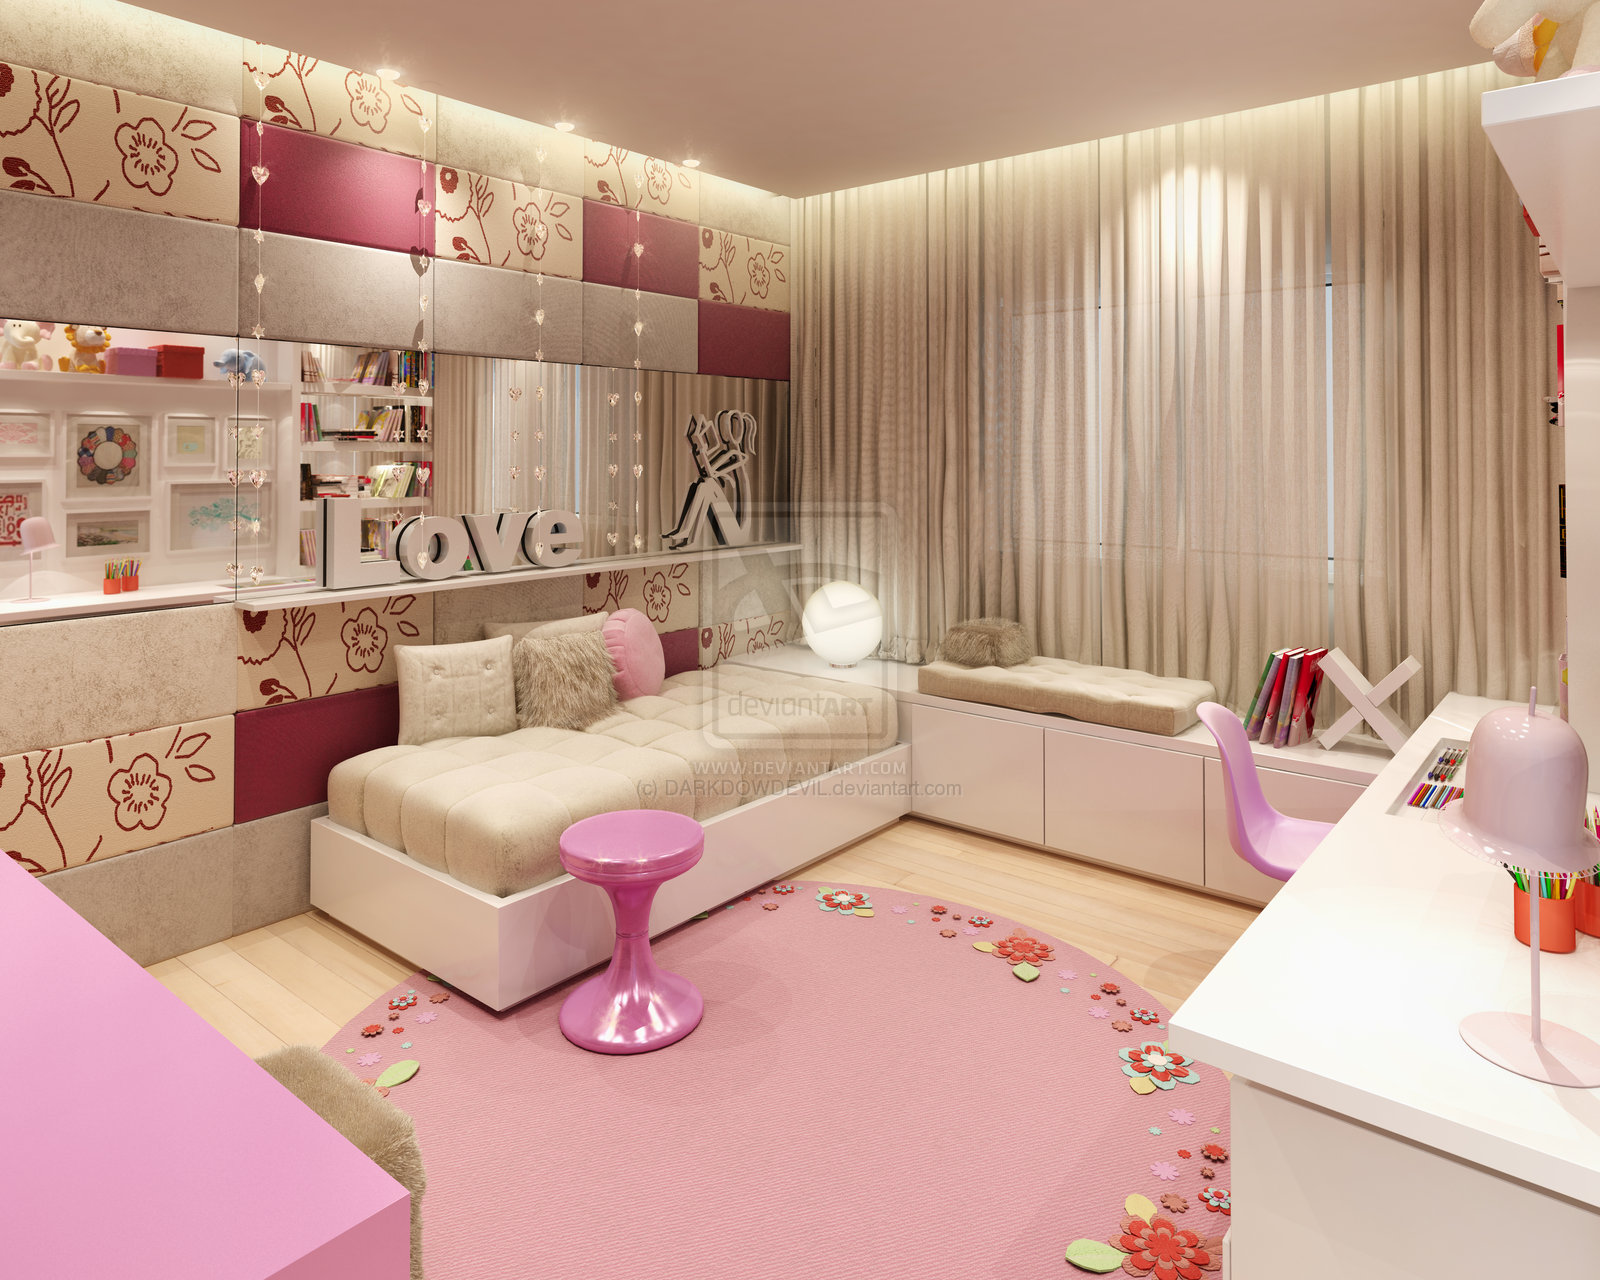 Teenage room designs - Bedroom for teenager girl ...